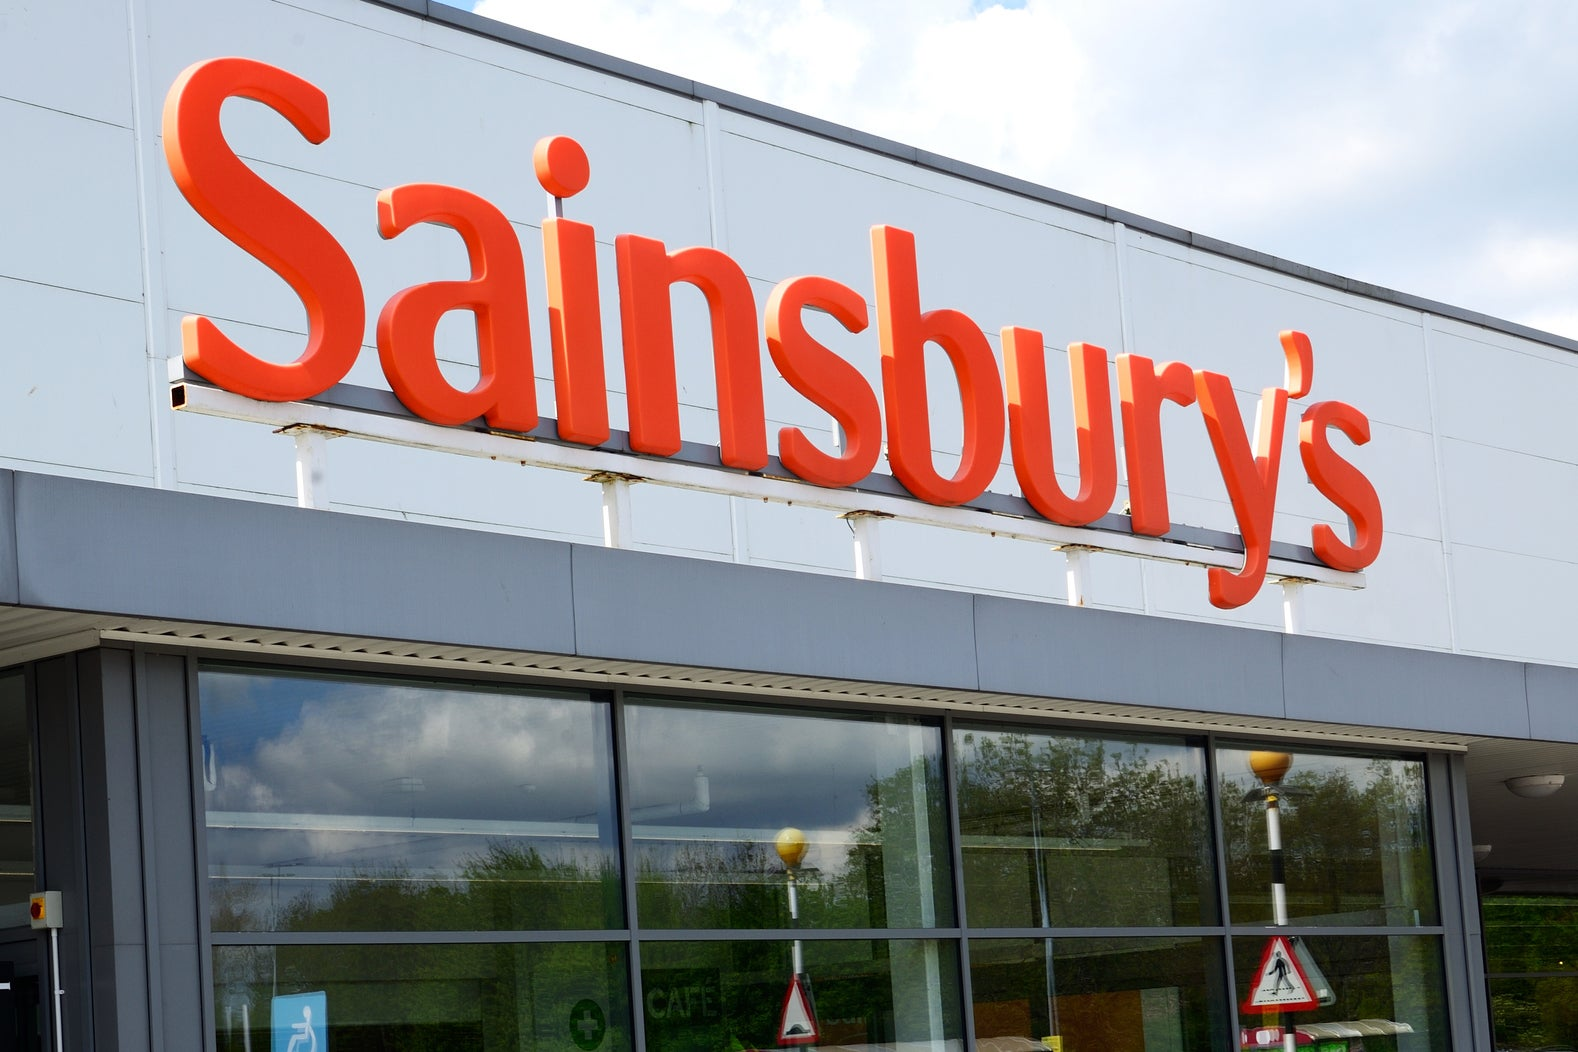 Sainsbury's announces plan to halve plastic packaging by 2025